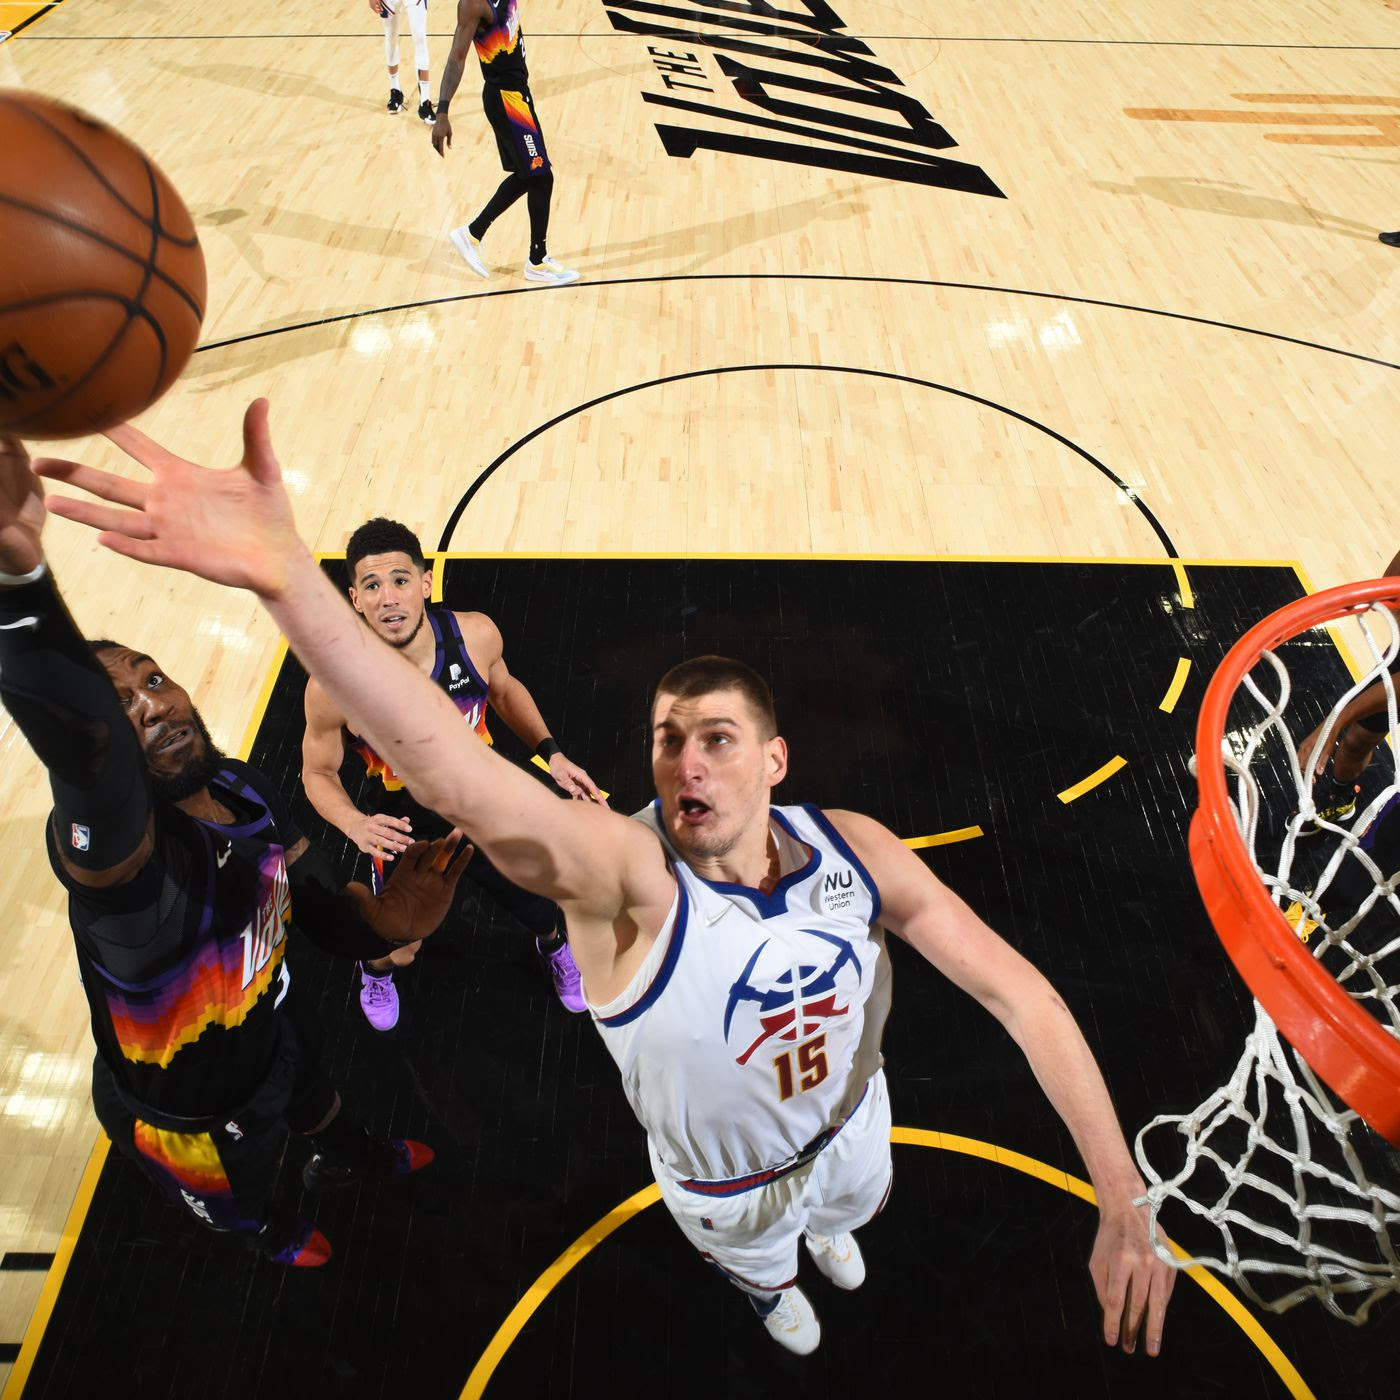 Fantasy Basketball Picks: Top DraftKings NBA DFS Lineup Strategy for Nuggets vs. Suns Showdown on June 11